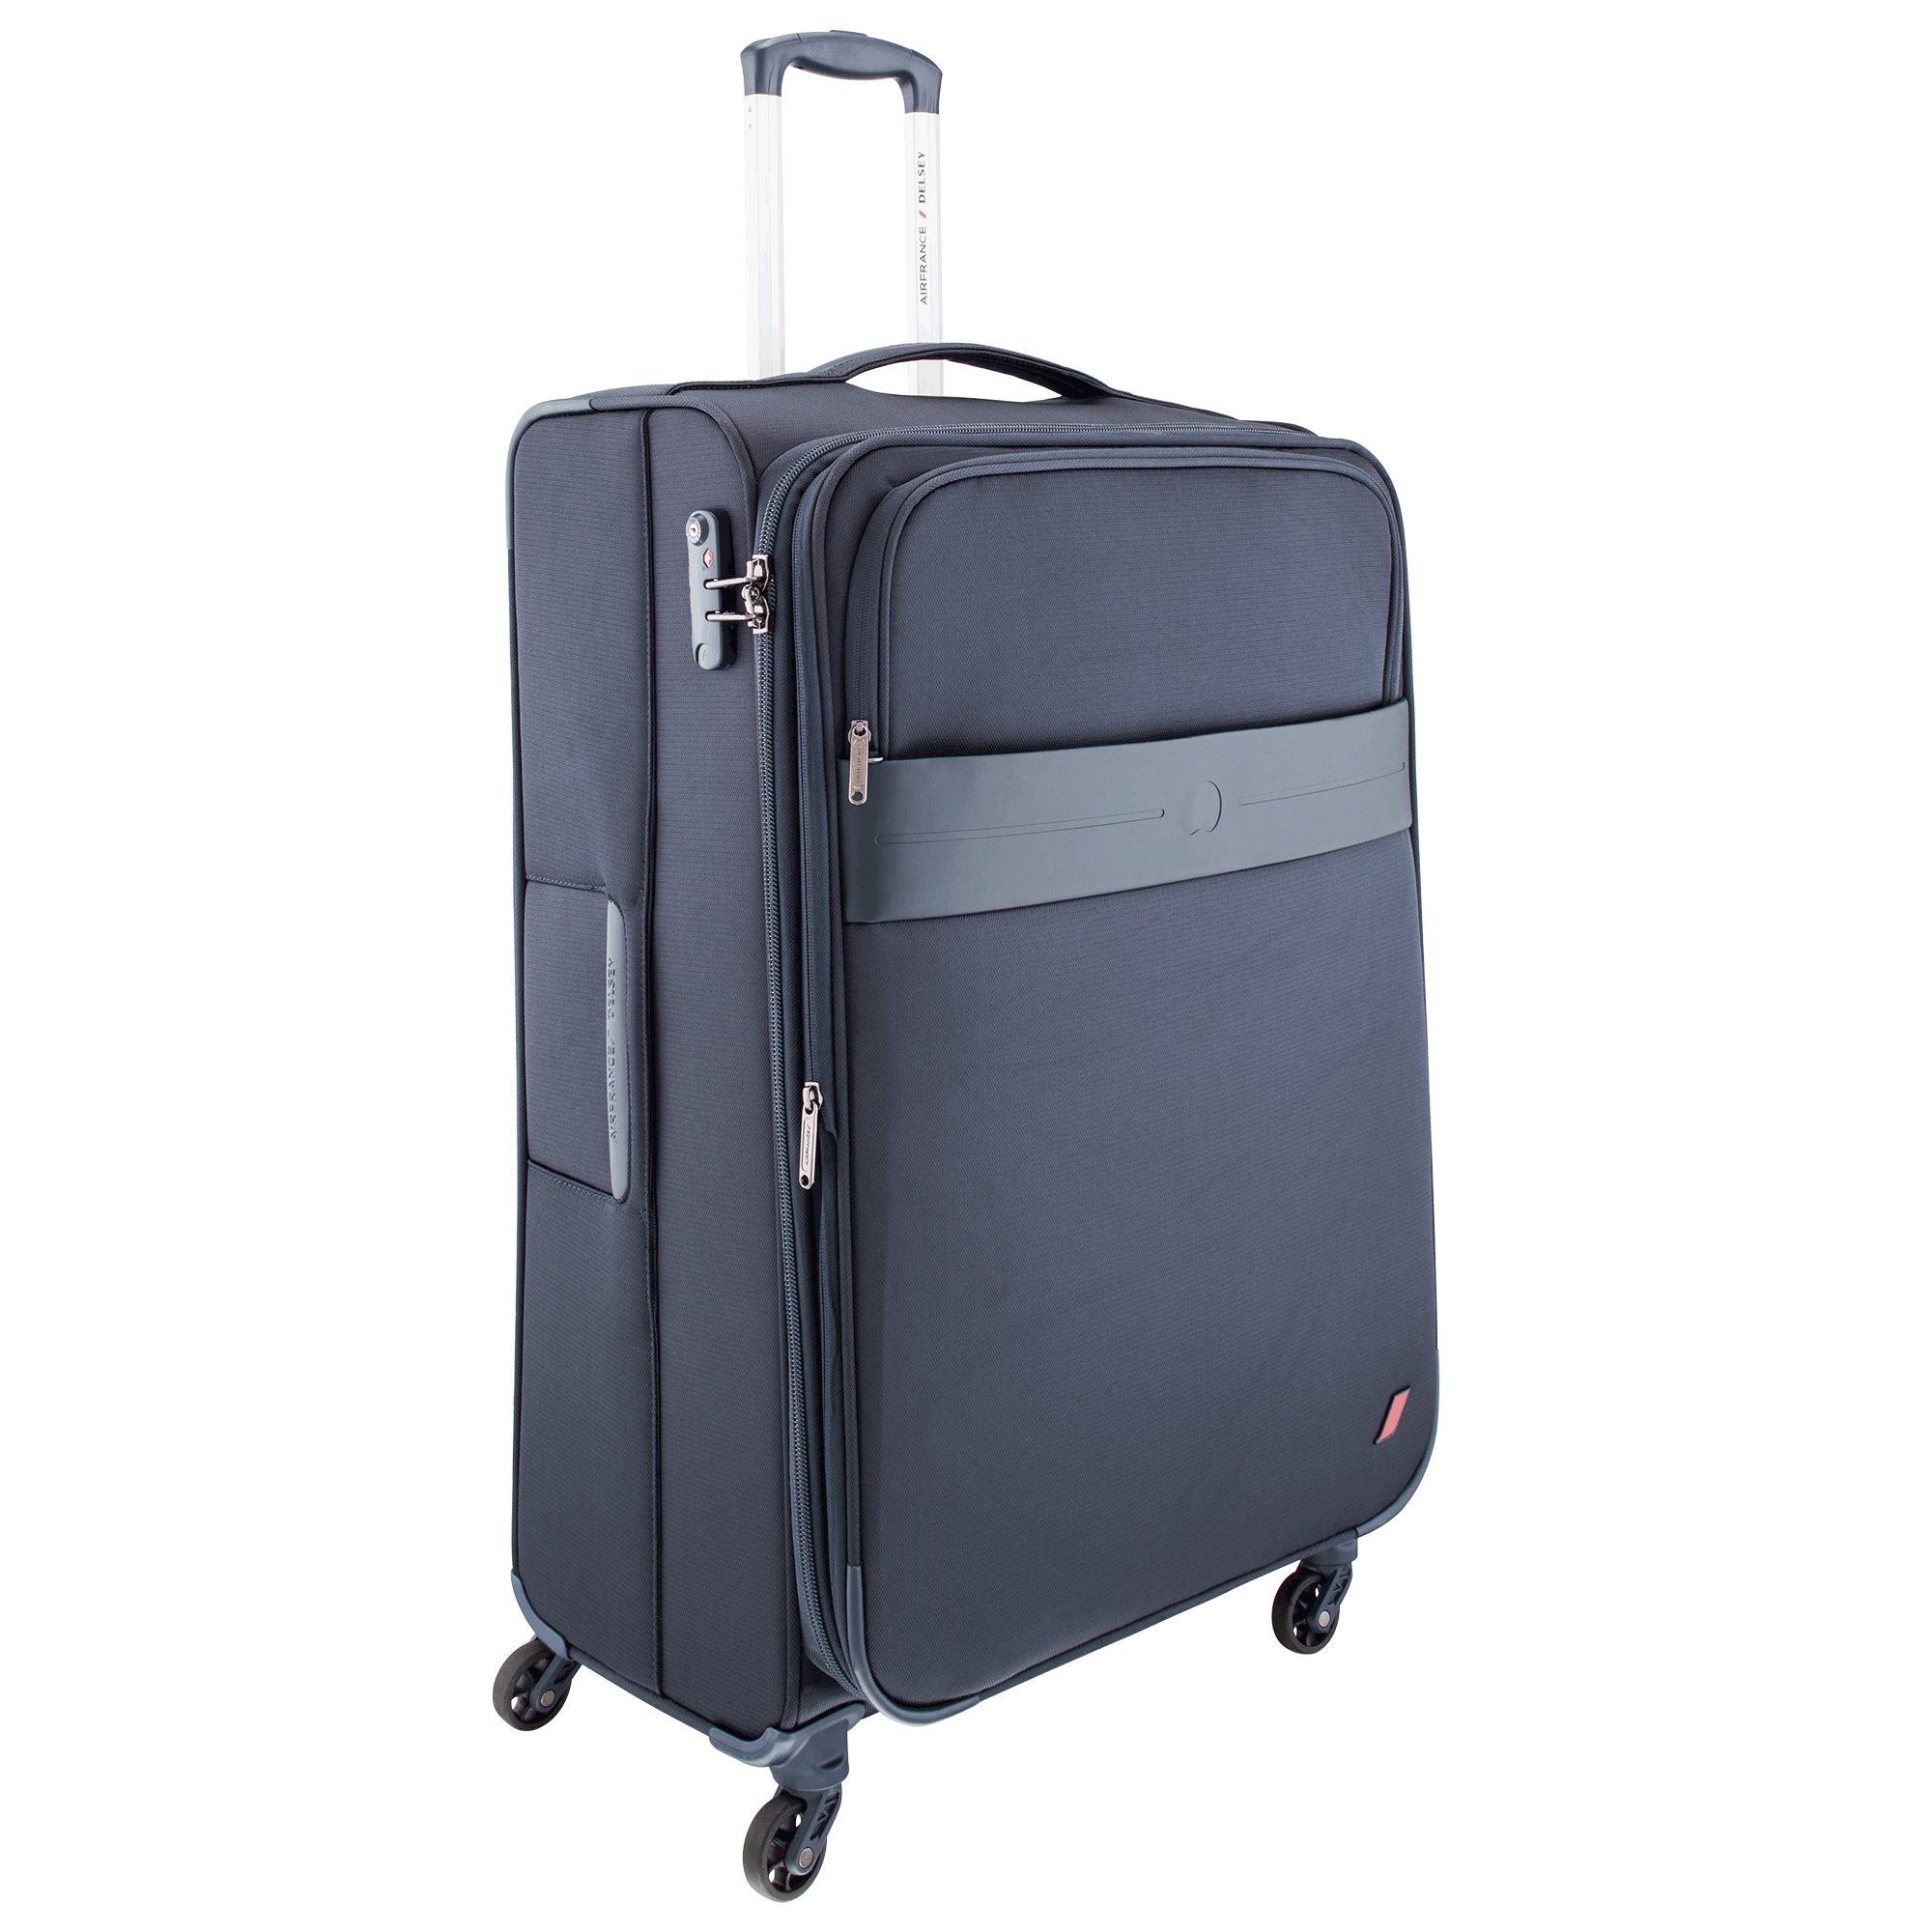 blue luggage png image purepng transparent #35074